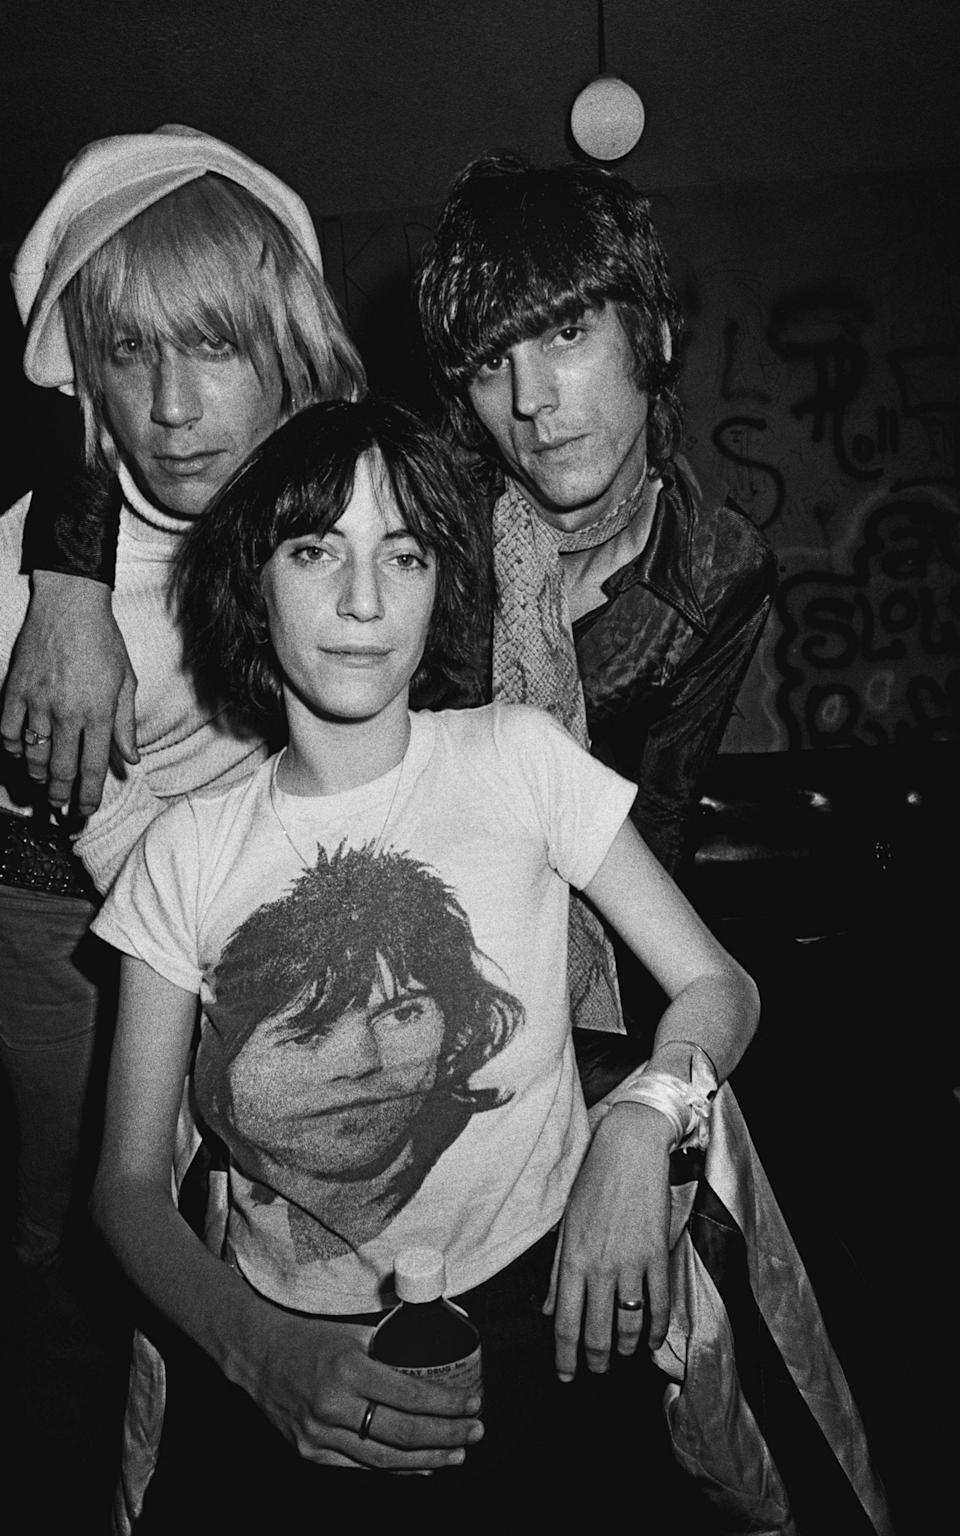 Force of nature: Smith with Iggy Pop and James Williamson of the Stooges in 1974 - Michael Ochs archives